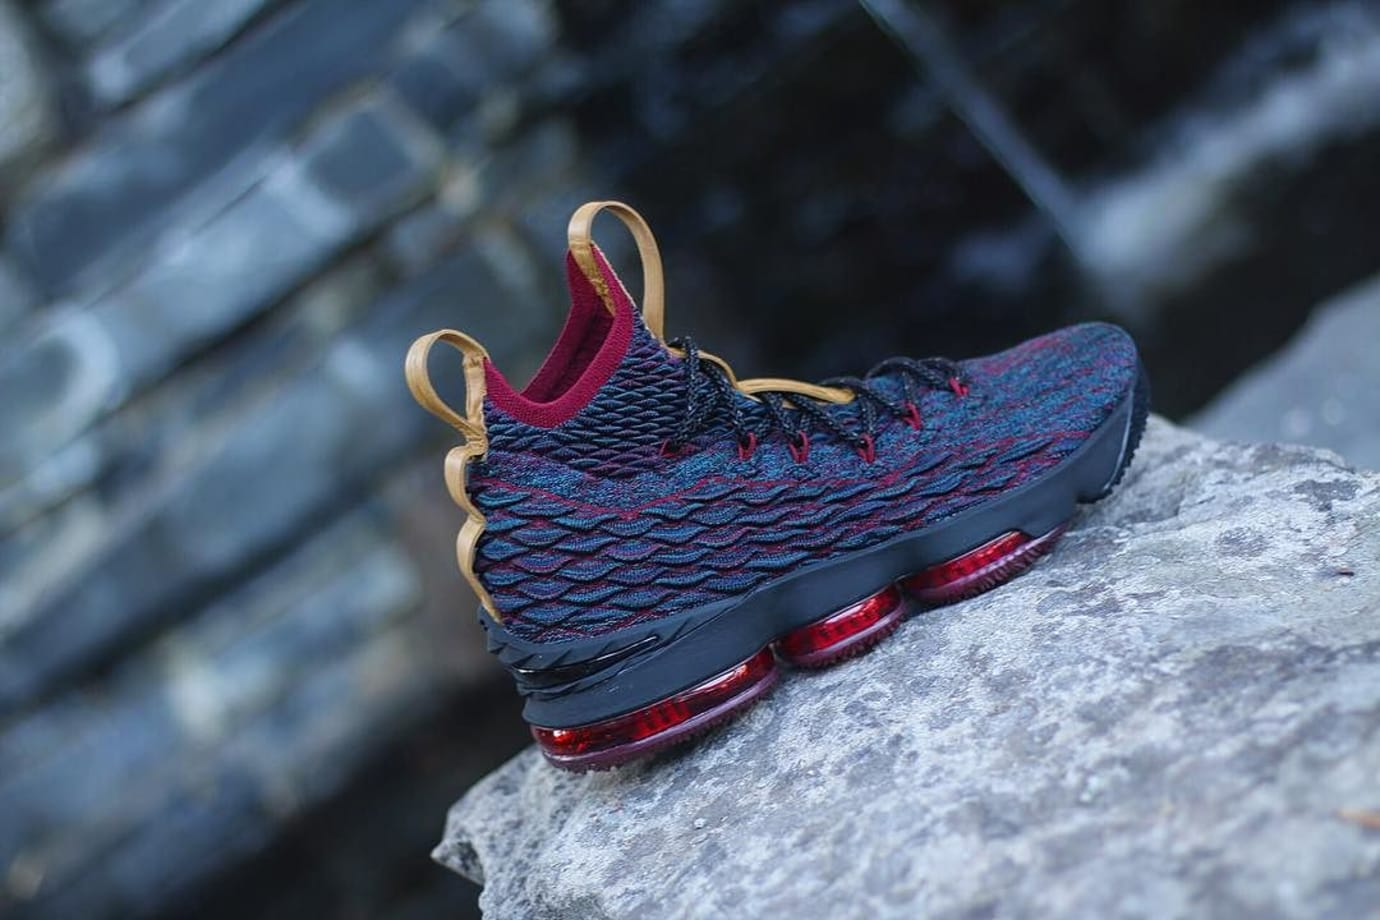 premium selection 23b9a 8e9dc Nike LeBron 15 Cavs New Heighs Sneakers Release Date | Sole ...